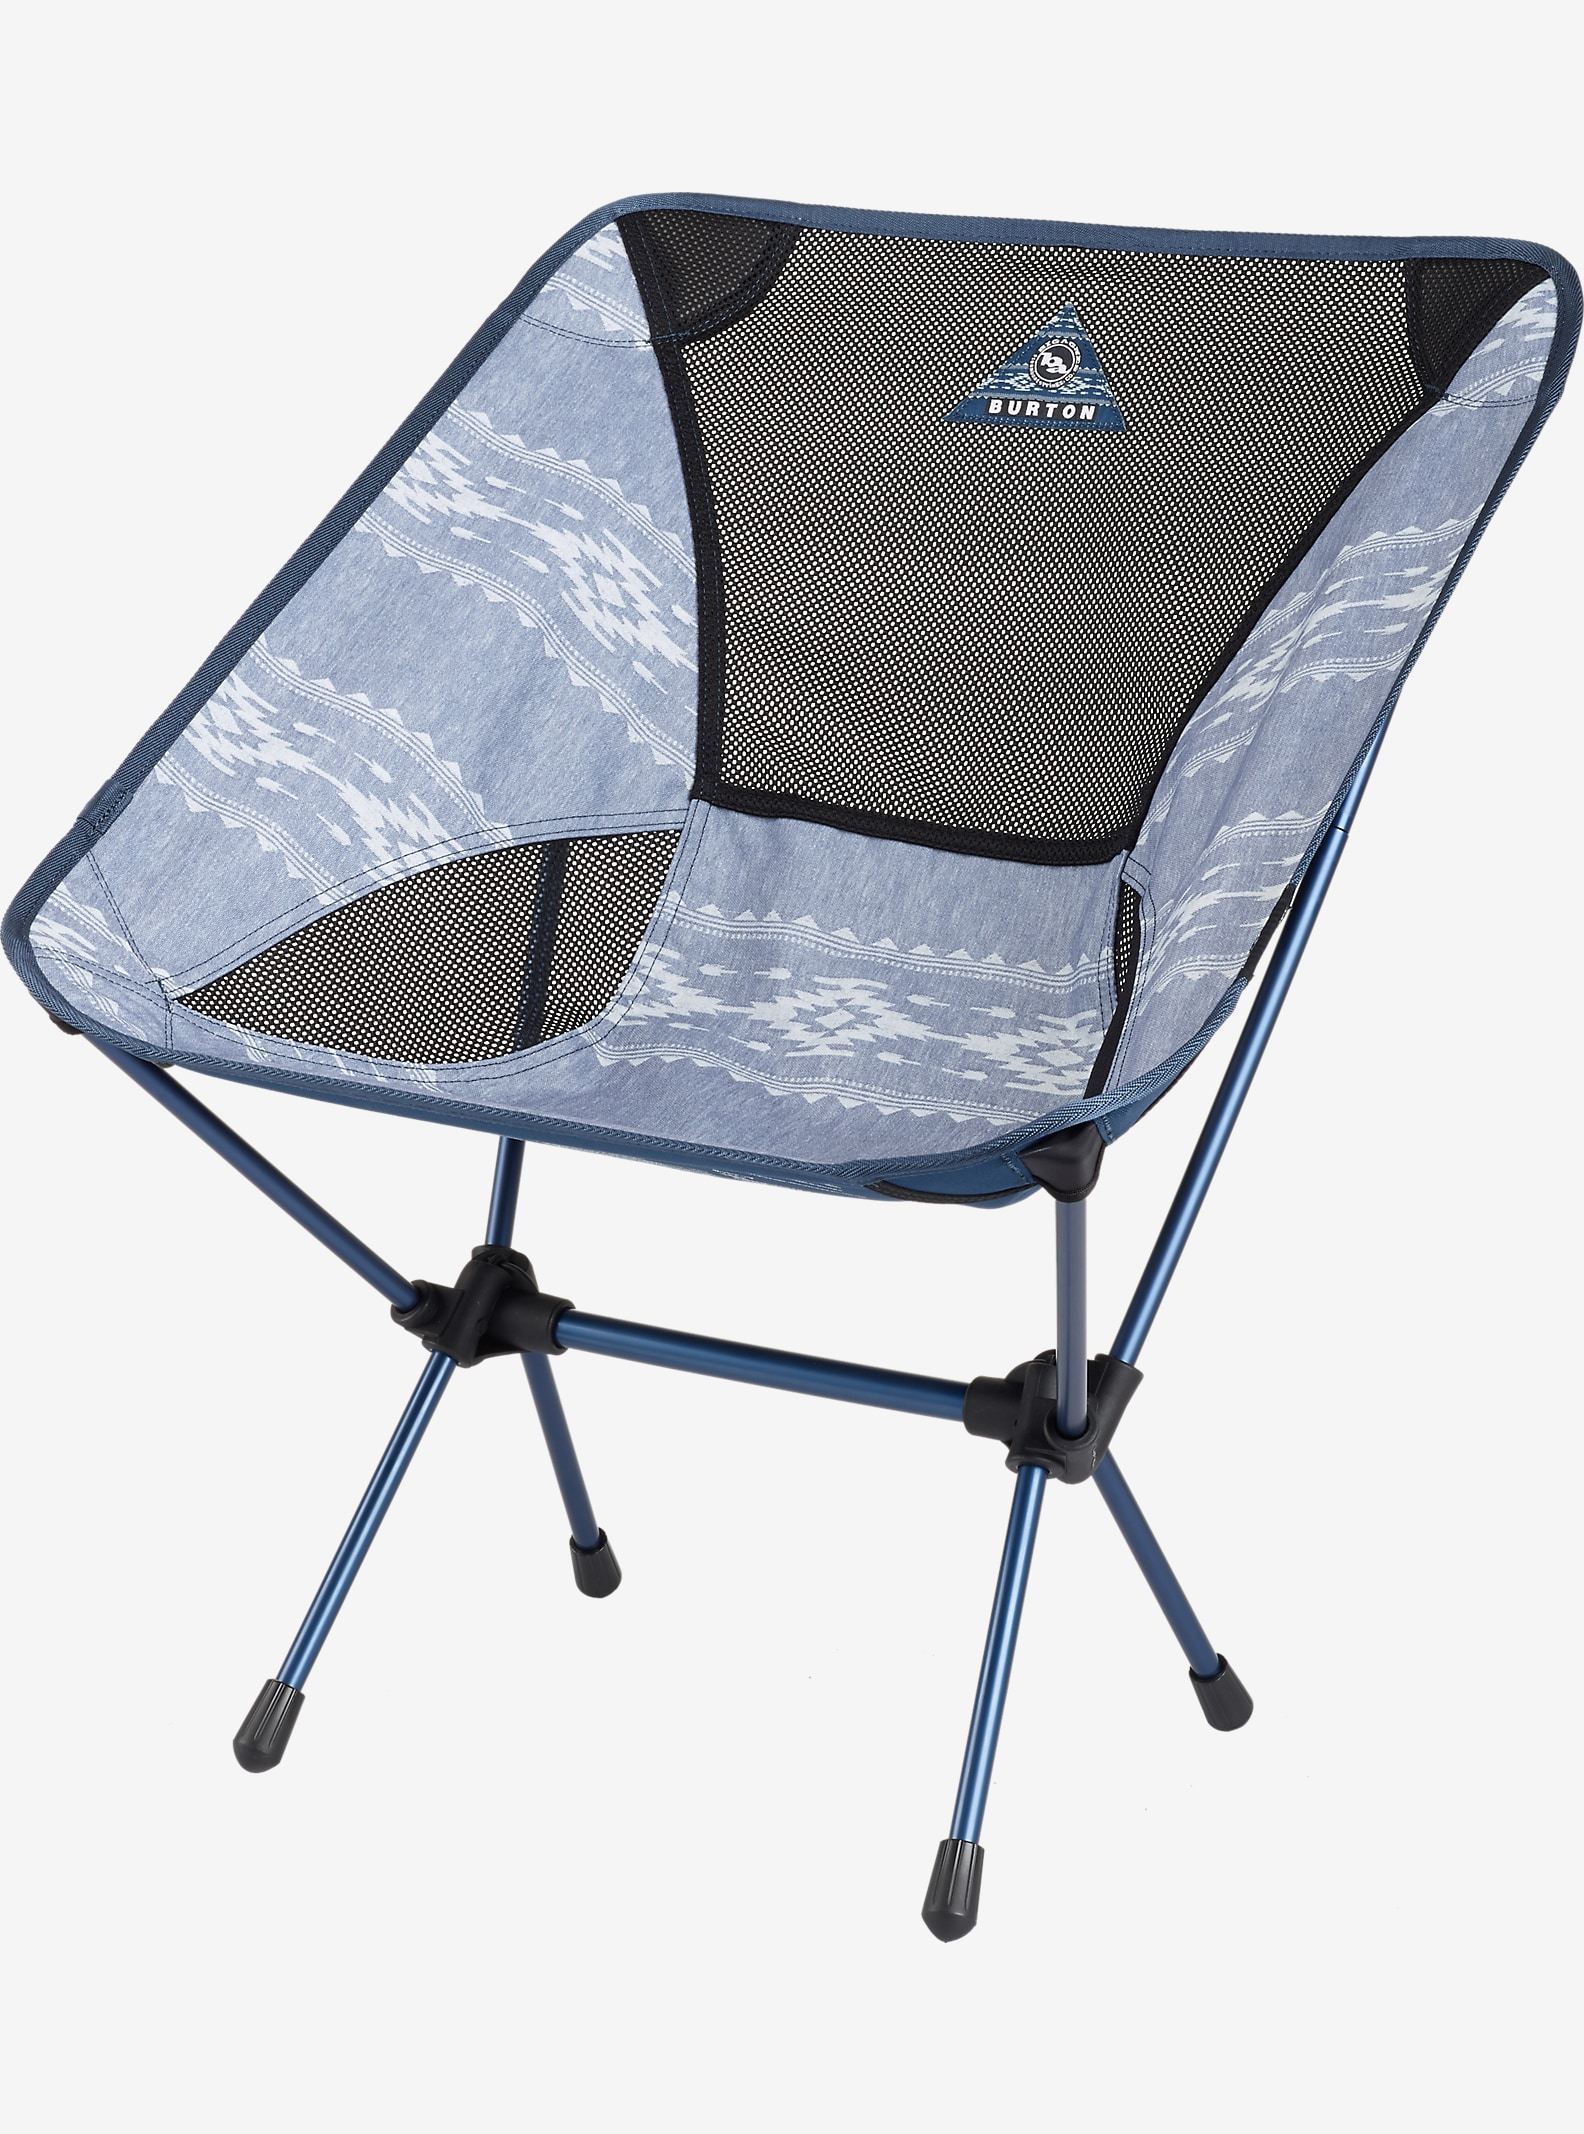 Big Agnes x Helinox x Burton Camp Chair shown in Famish Stripe